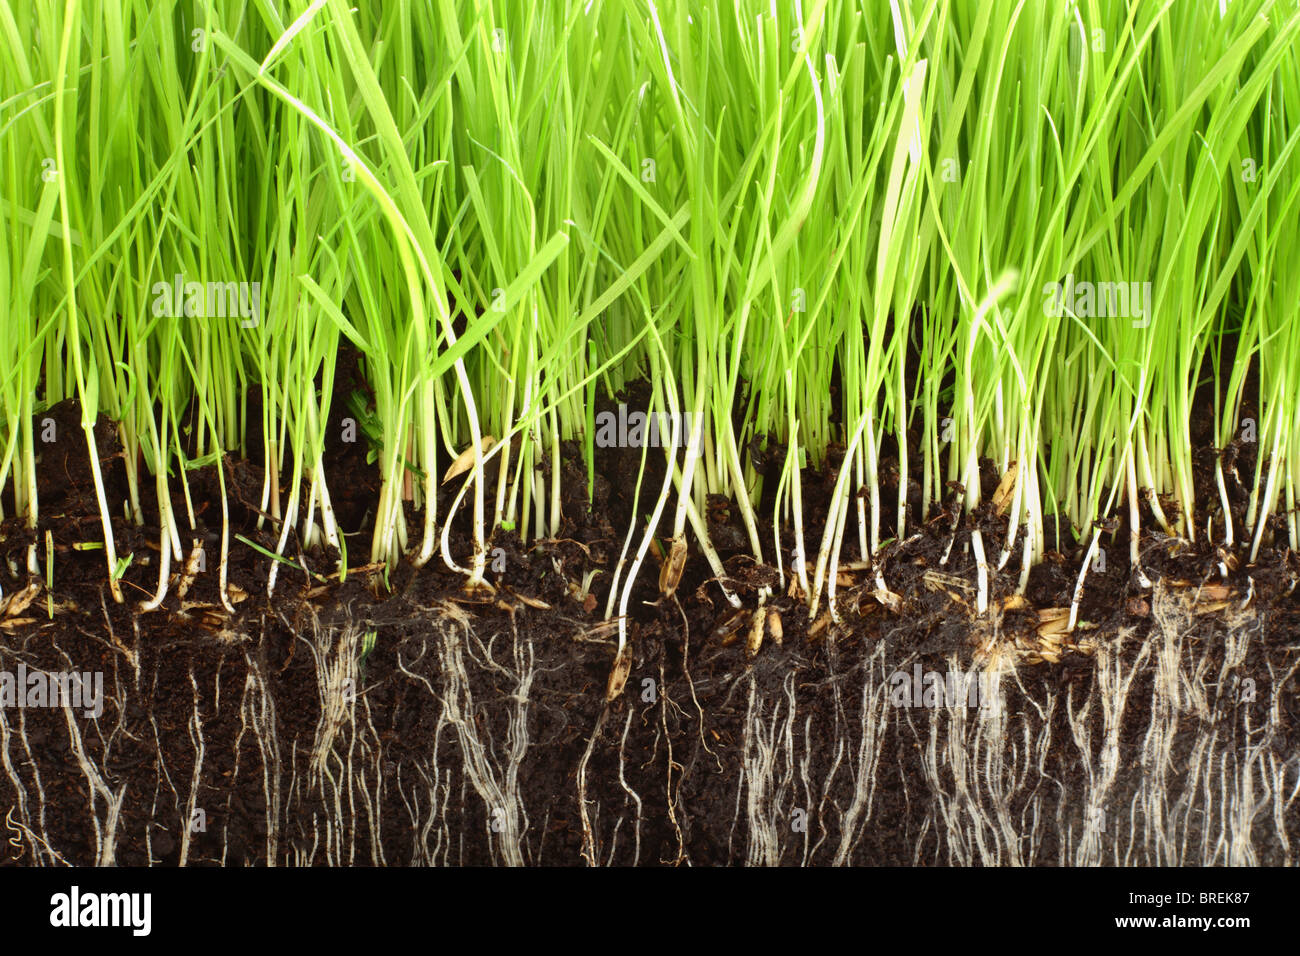 Fresh grass growing in compost with close up detail of the roots showing. Stock Photo